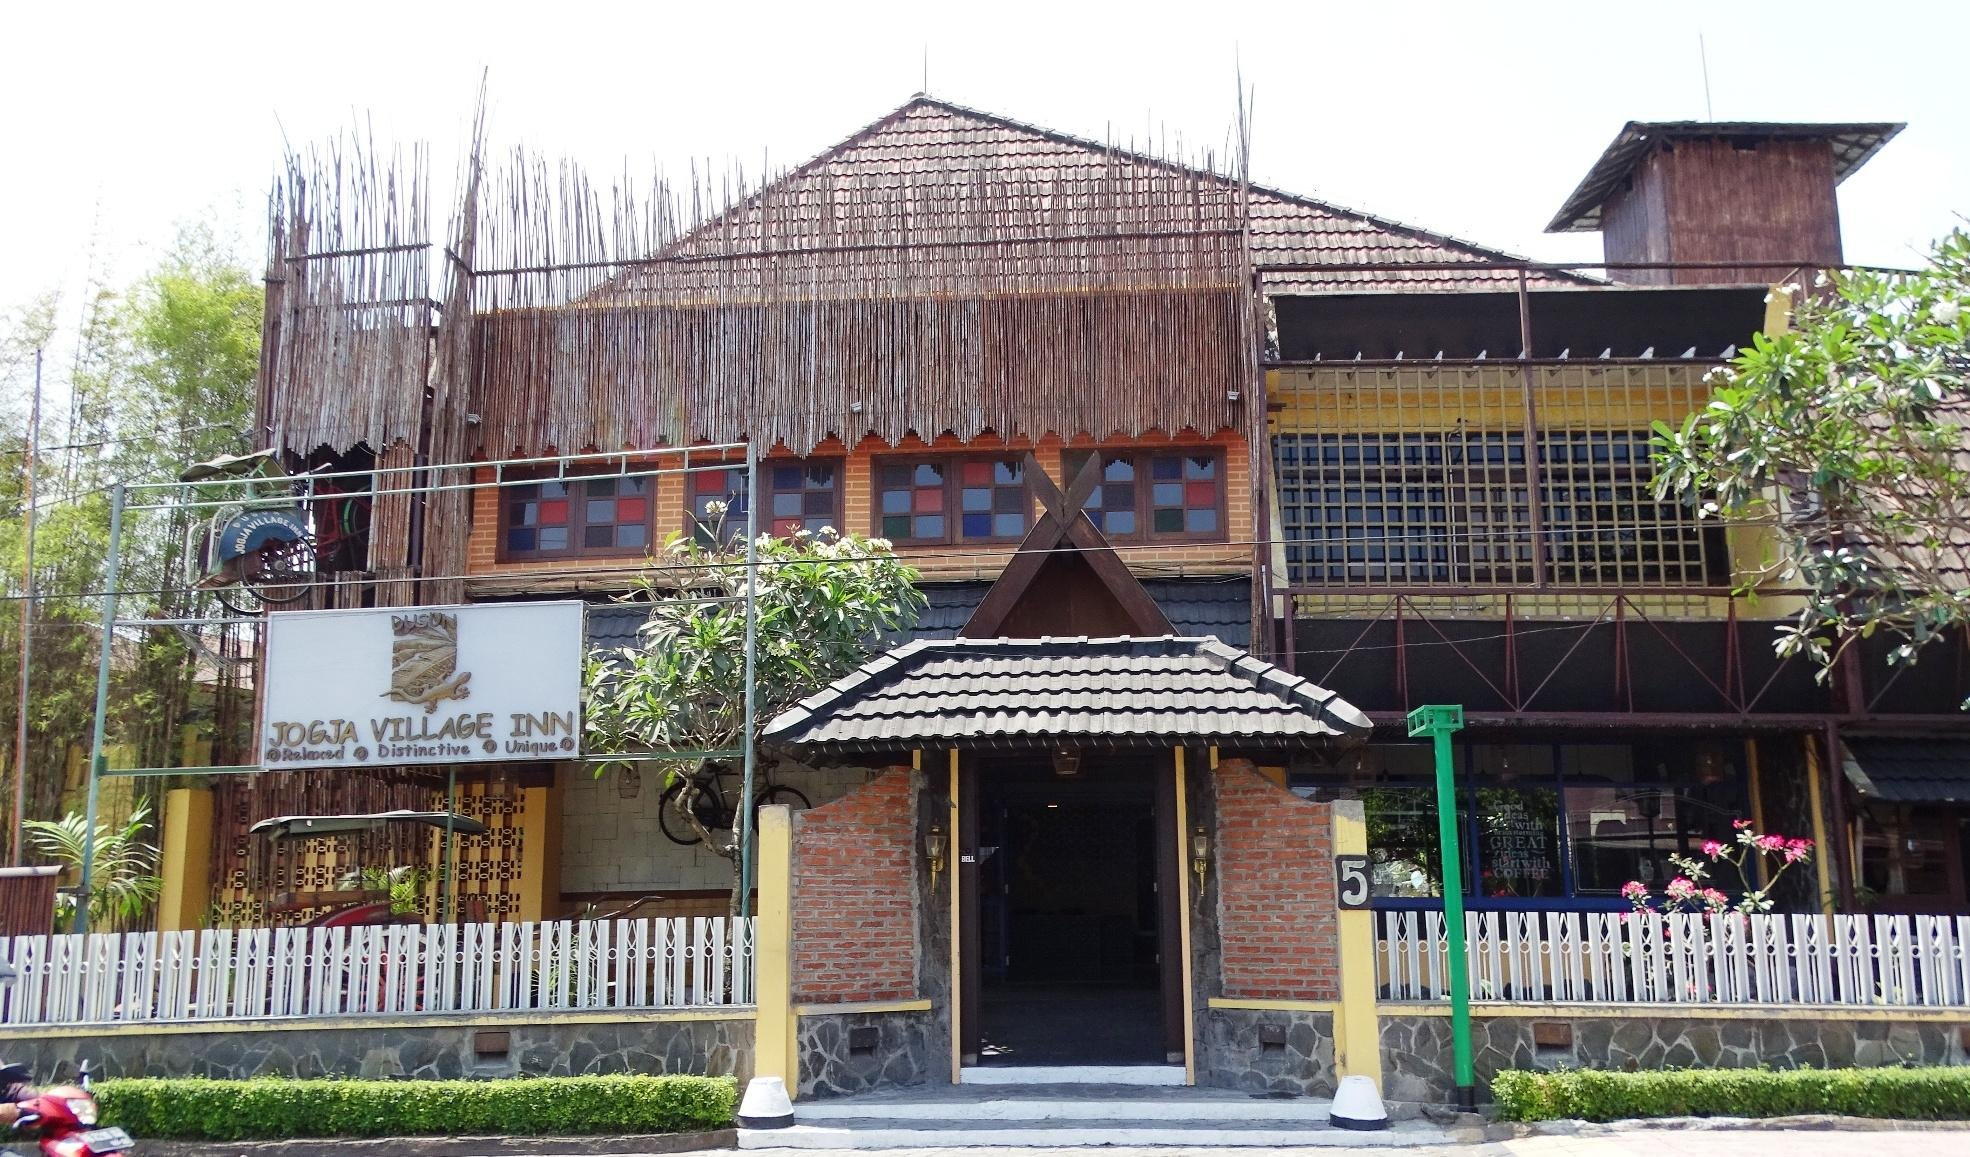 Dusun Yogya village Inn